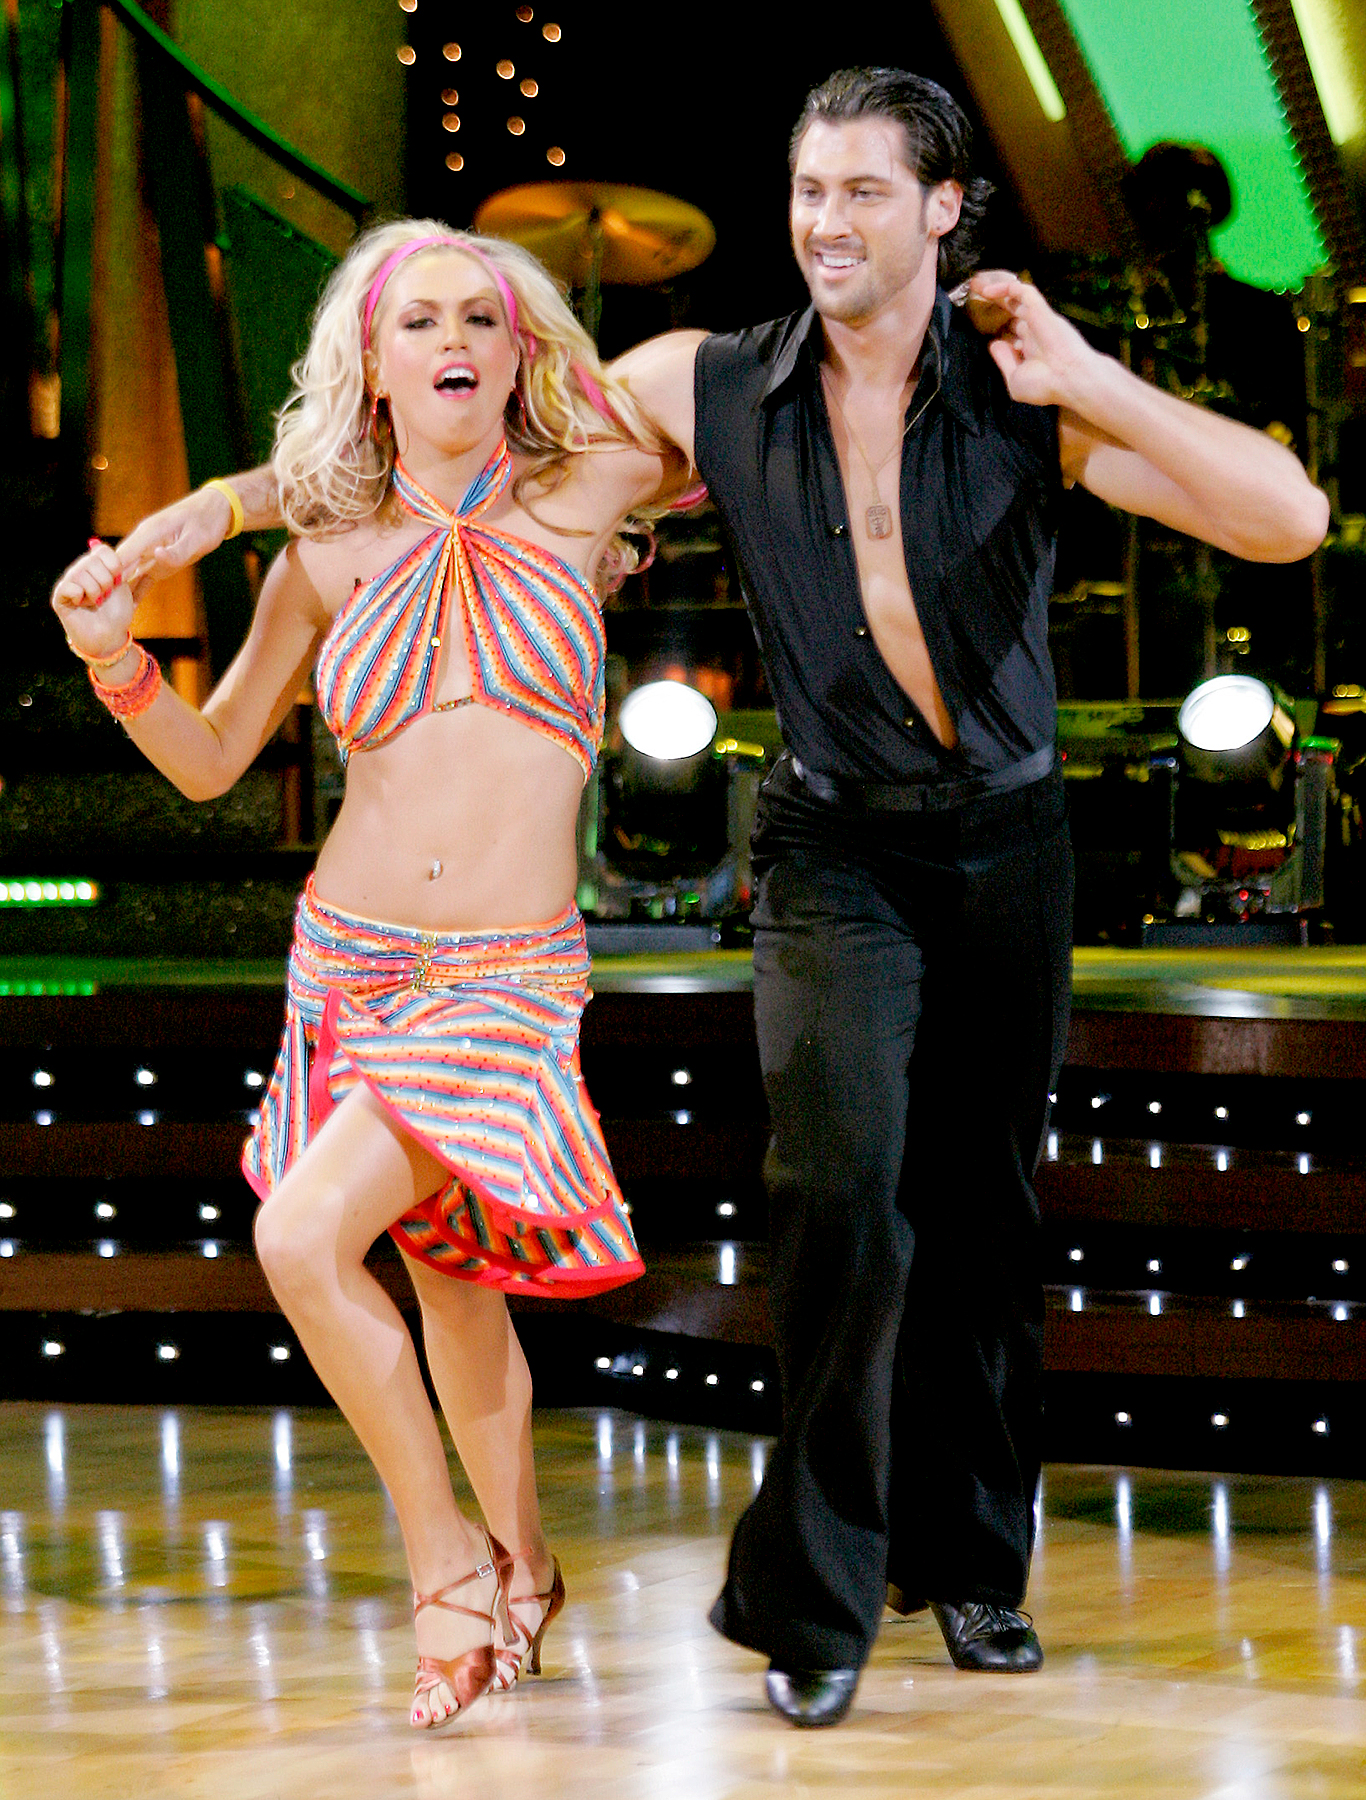 Dancing with the stars max and erin still hookup